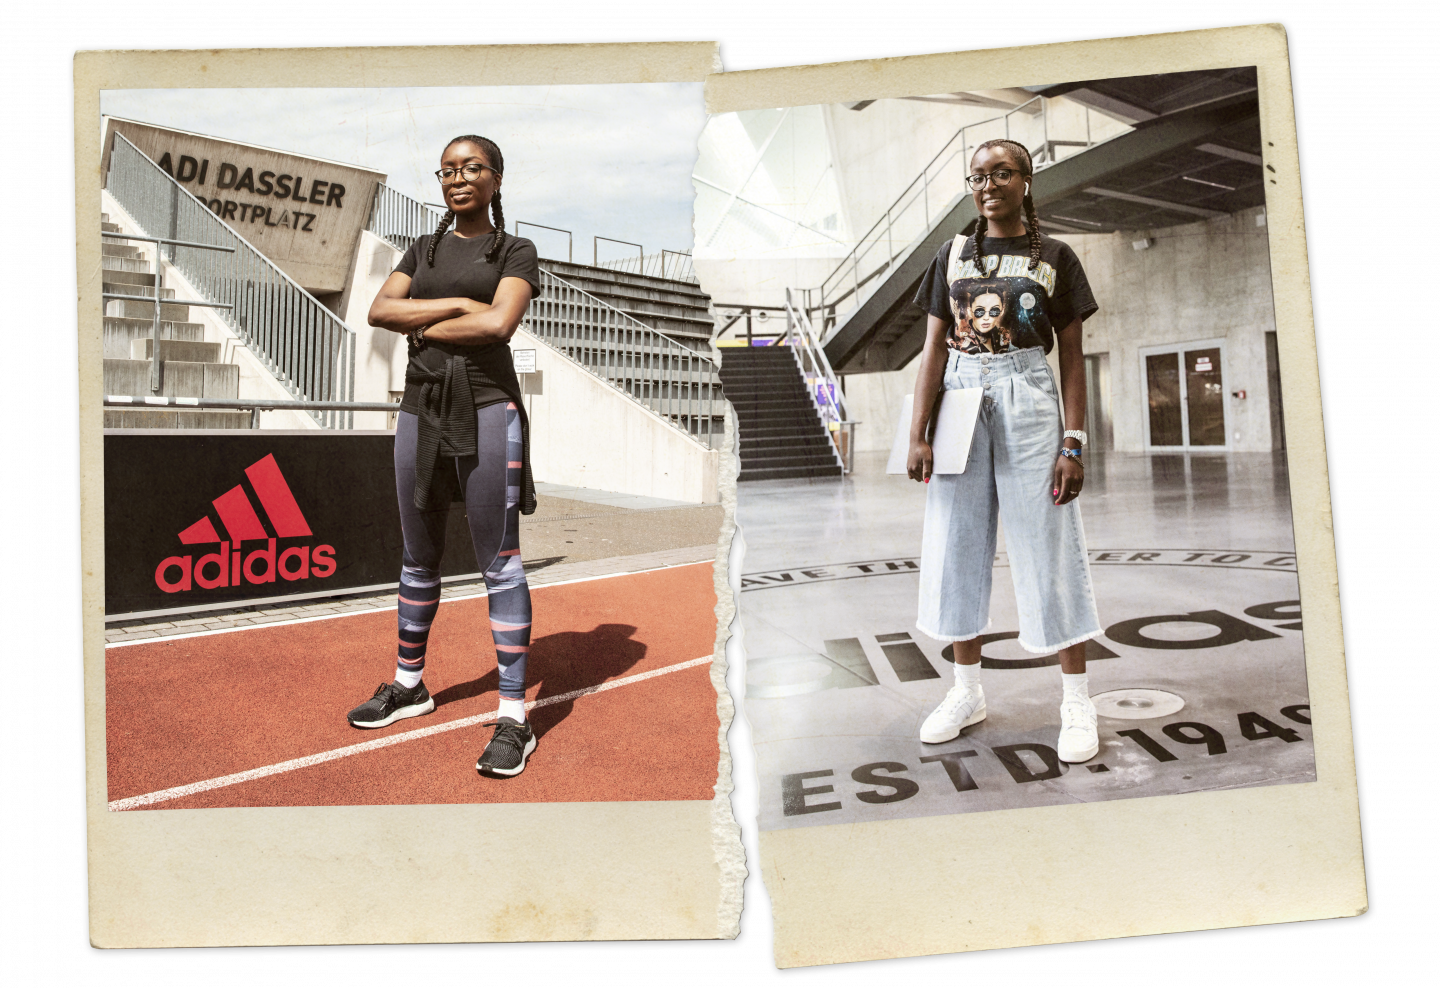 Business athlete Tobi Gbile at the adidas headquarters living workplace culture in both career and sports